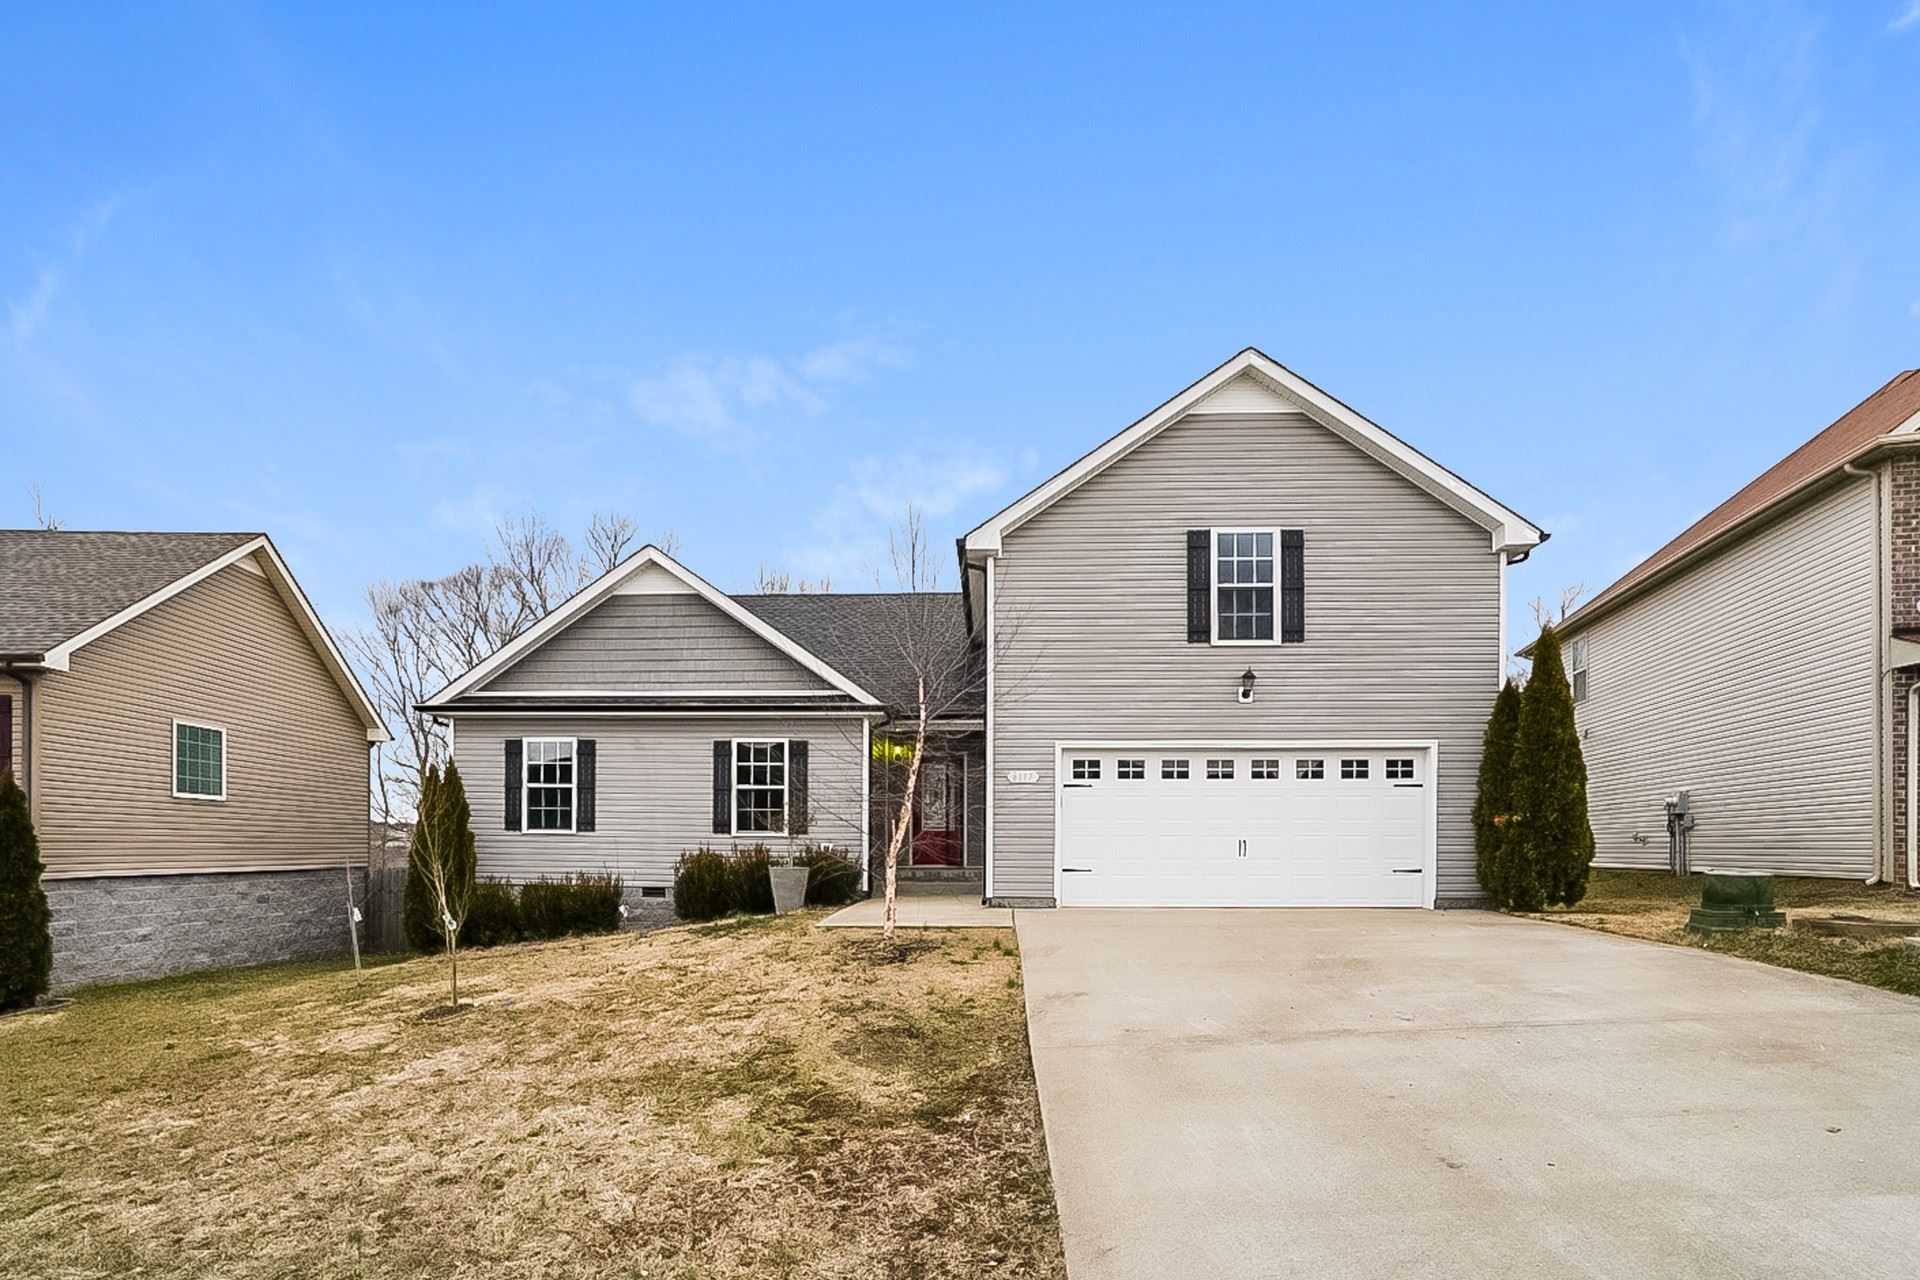 117 Irishman Way, Clarksville, TN 37042 - MLS#: 2231397